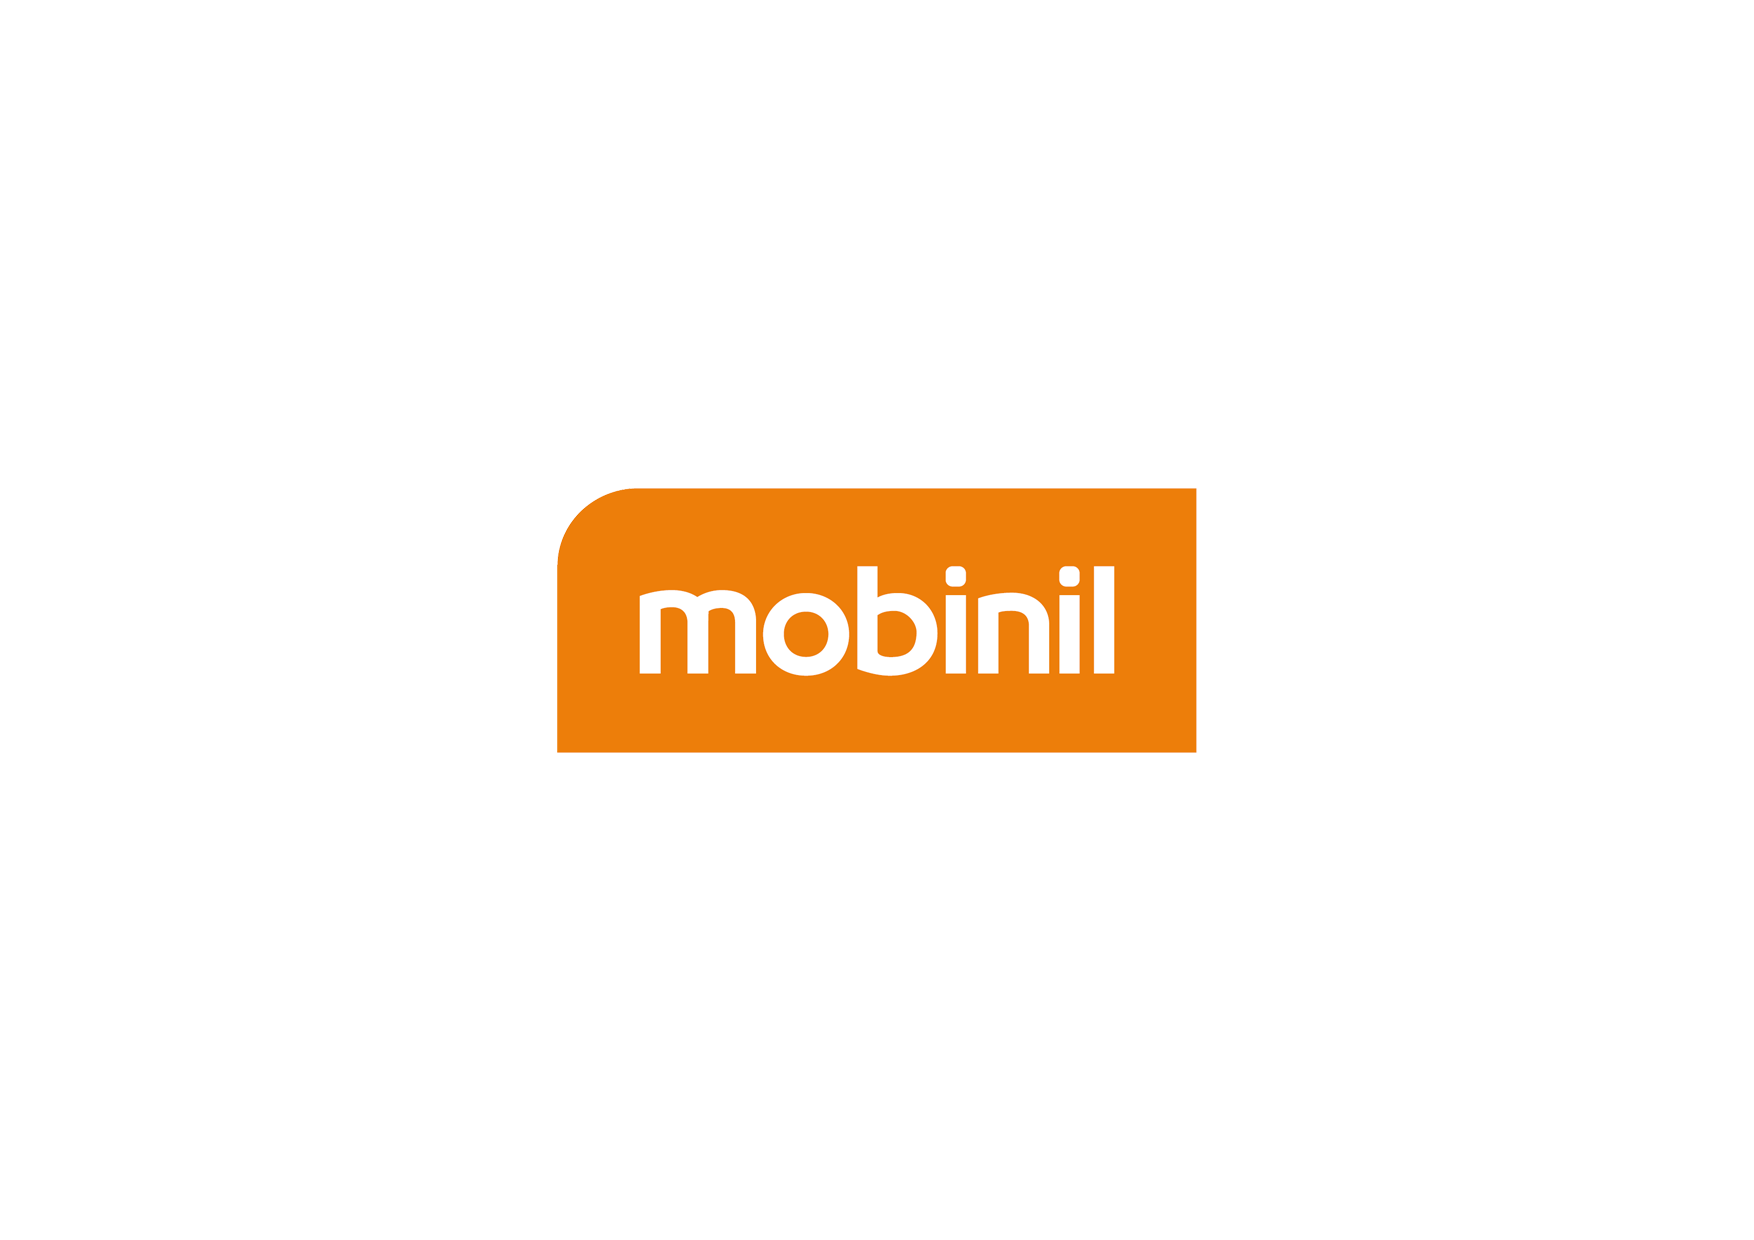 mobinil 81 mobinil reviews a free inside look at company reviews and salaries posted anonymously by employees.